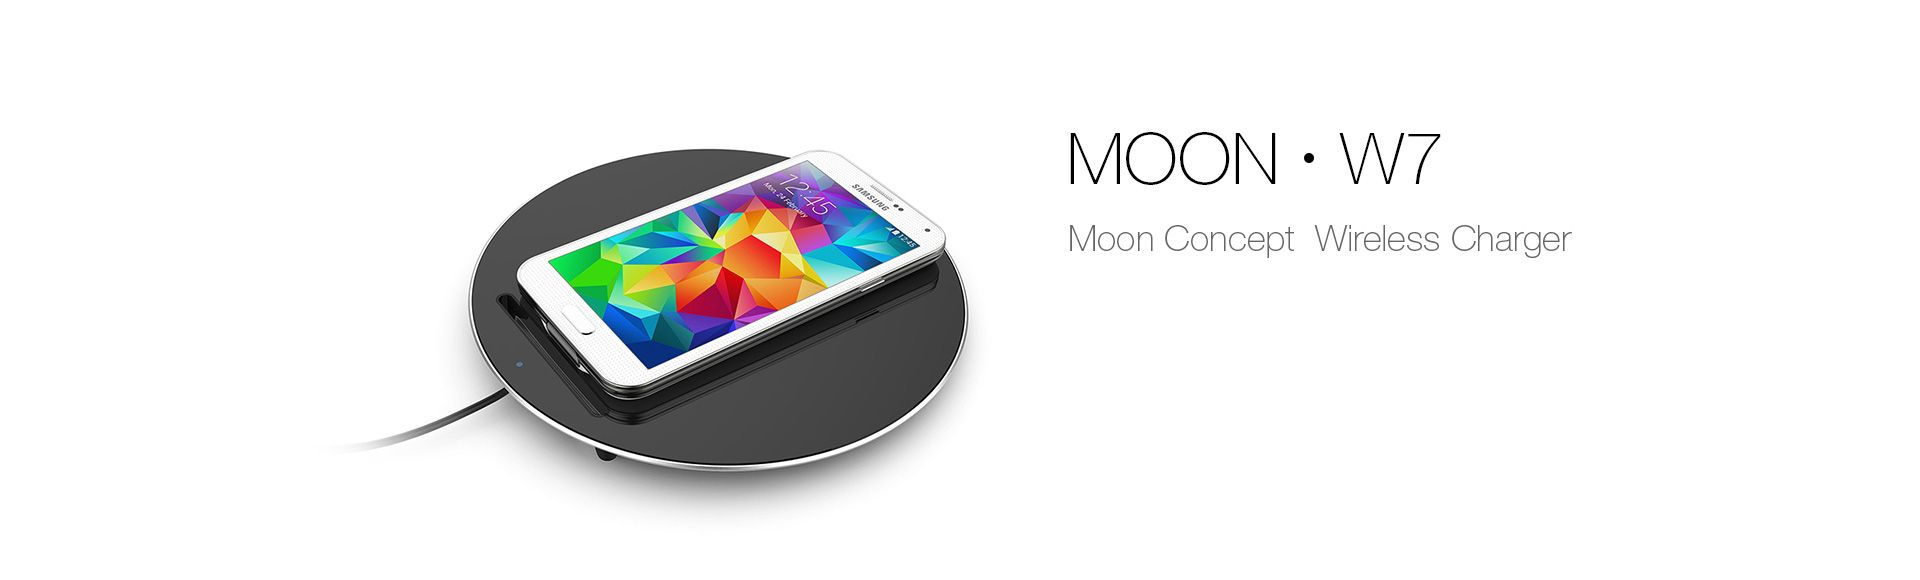 MOON W7 Wireless Charger Charging Pad - Original for Samsung Galaxy S6 S7 edge Note 5 for iPhone 6 6S 7 Plus 5 Stand Phone Charger